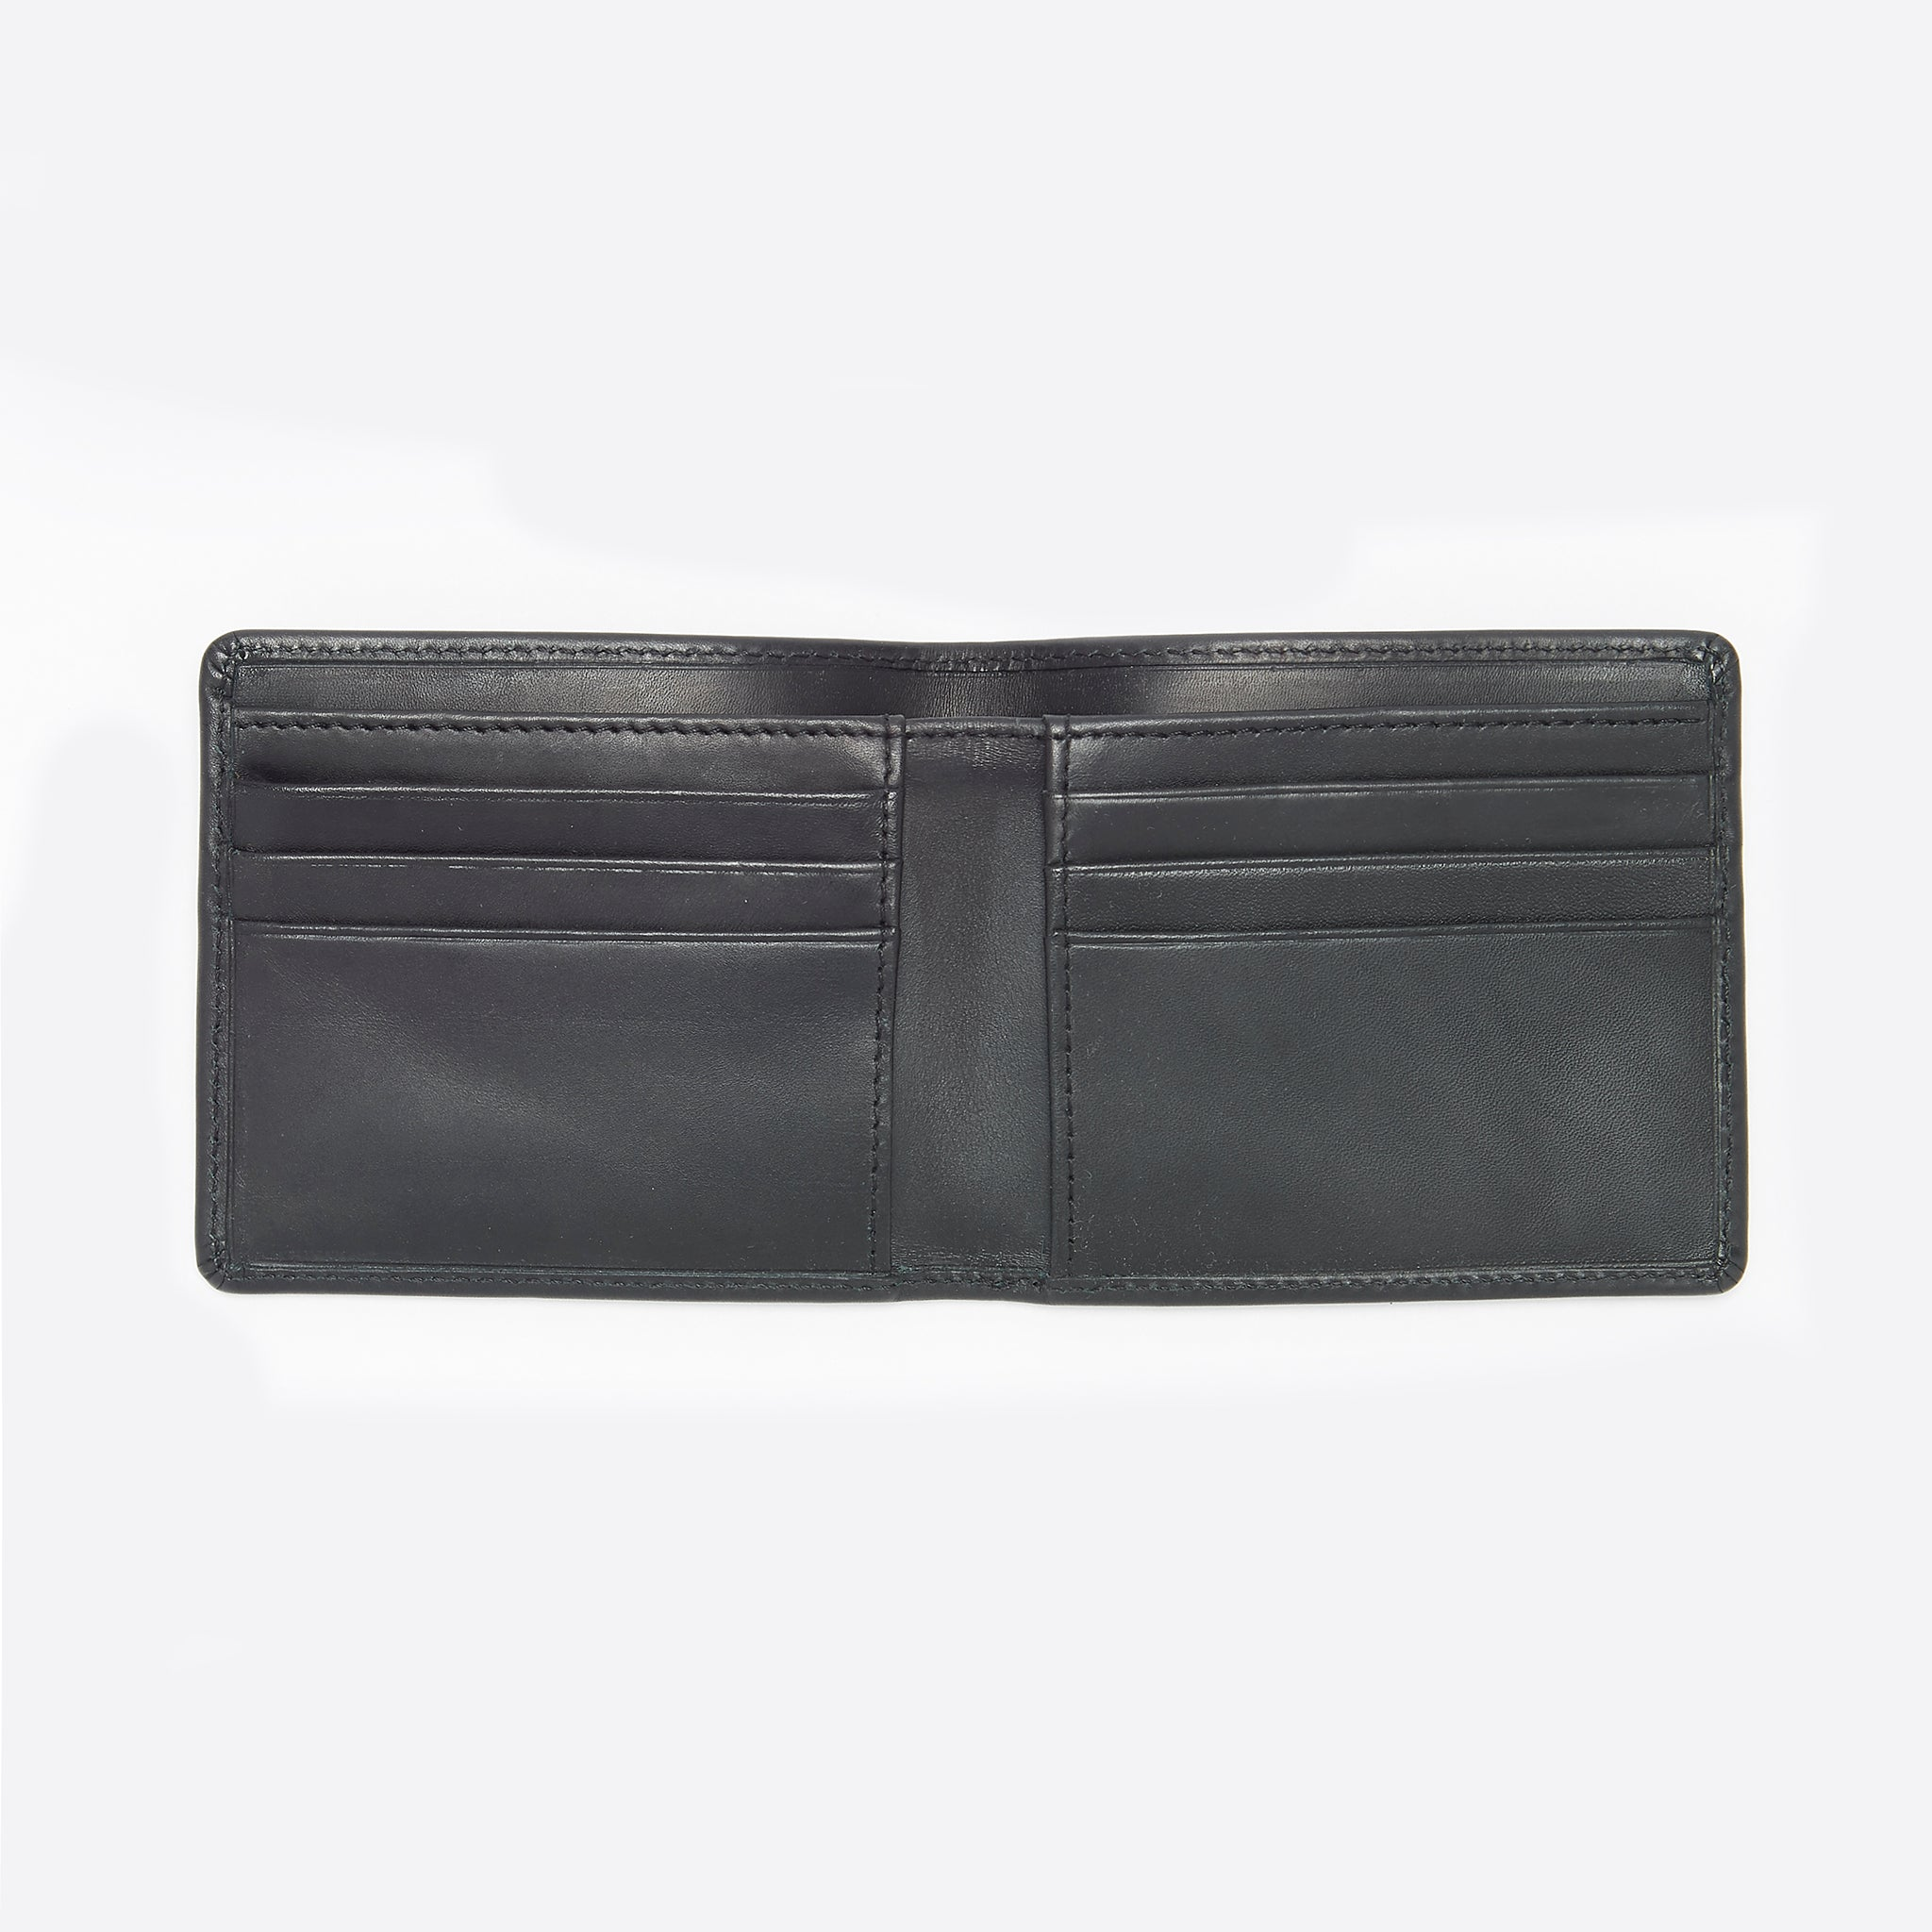 Sandqvist Manfred Wallet in Black